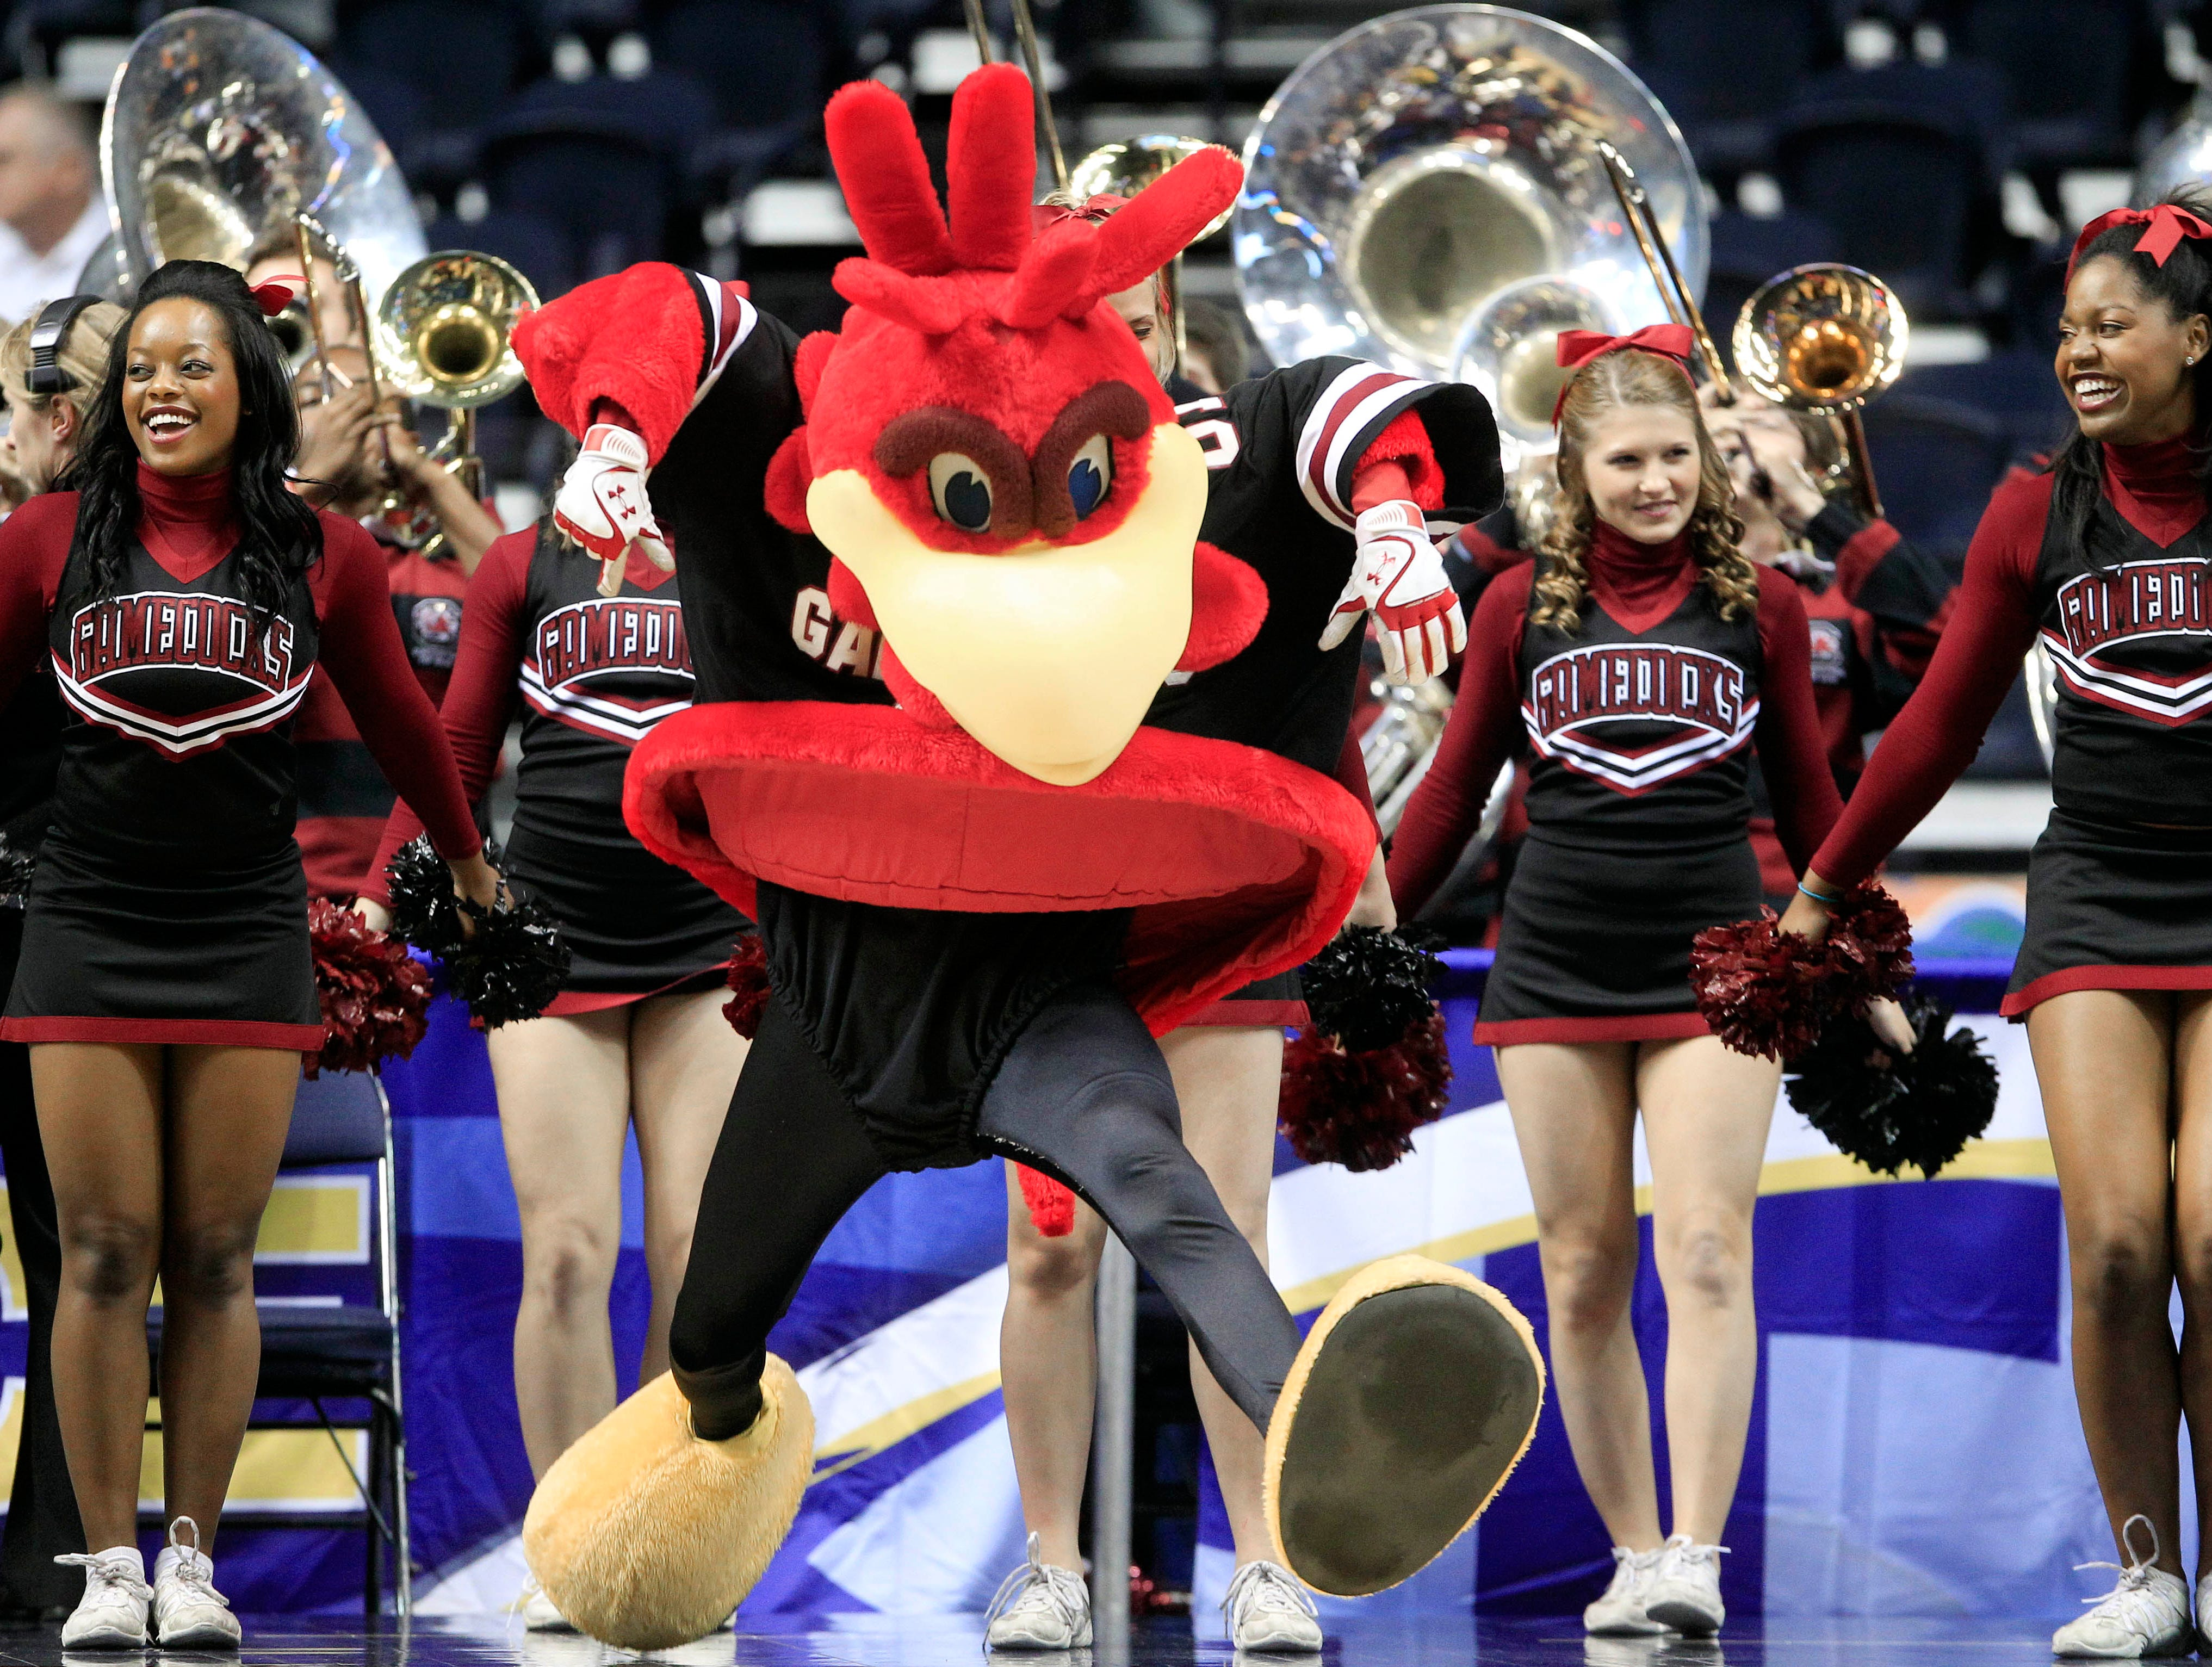 Cocky, the South Carolina mascot, dances with the cheerleaders in the first half of South Carolina's NCAA basketball game against Alabama at the women's Southeastern Conference tournament Thursday, March 1, 2012, in Nashville, Tenn. (AP Photo/Mark Humphrey)